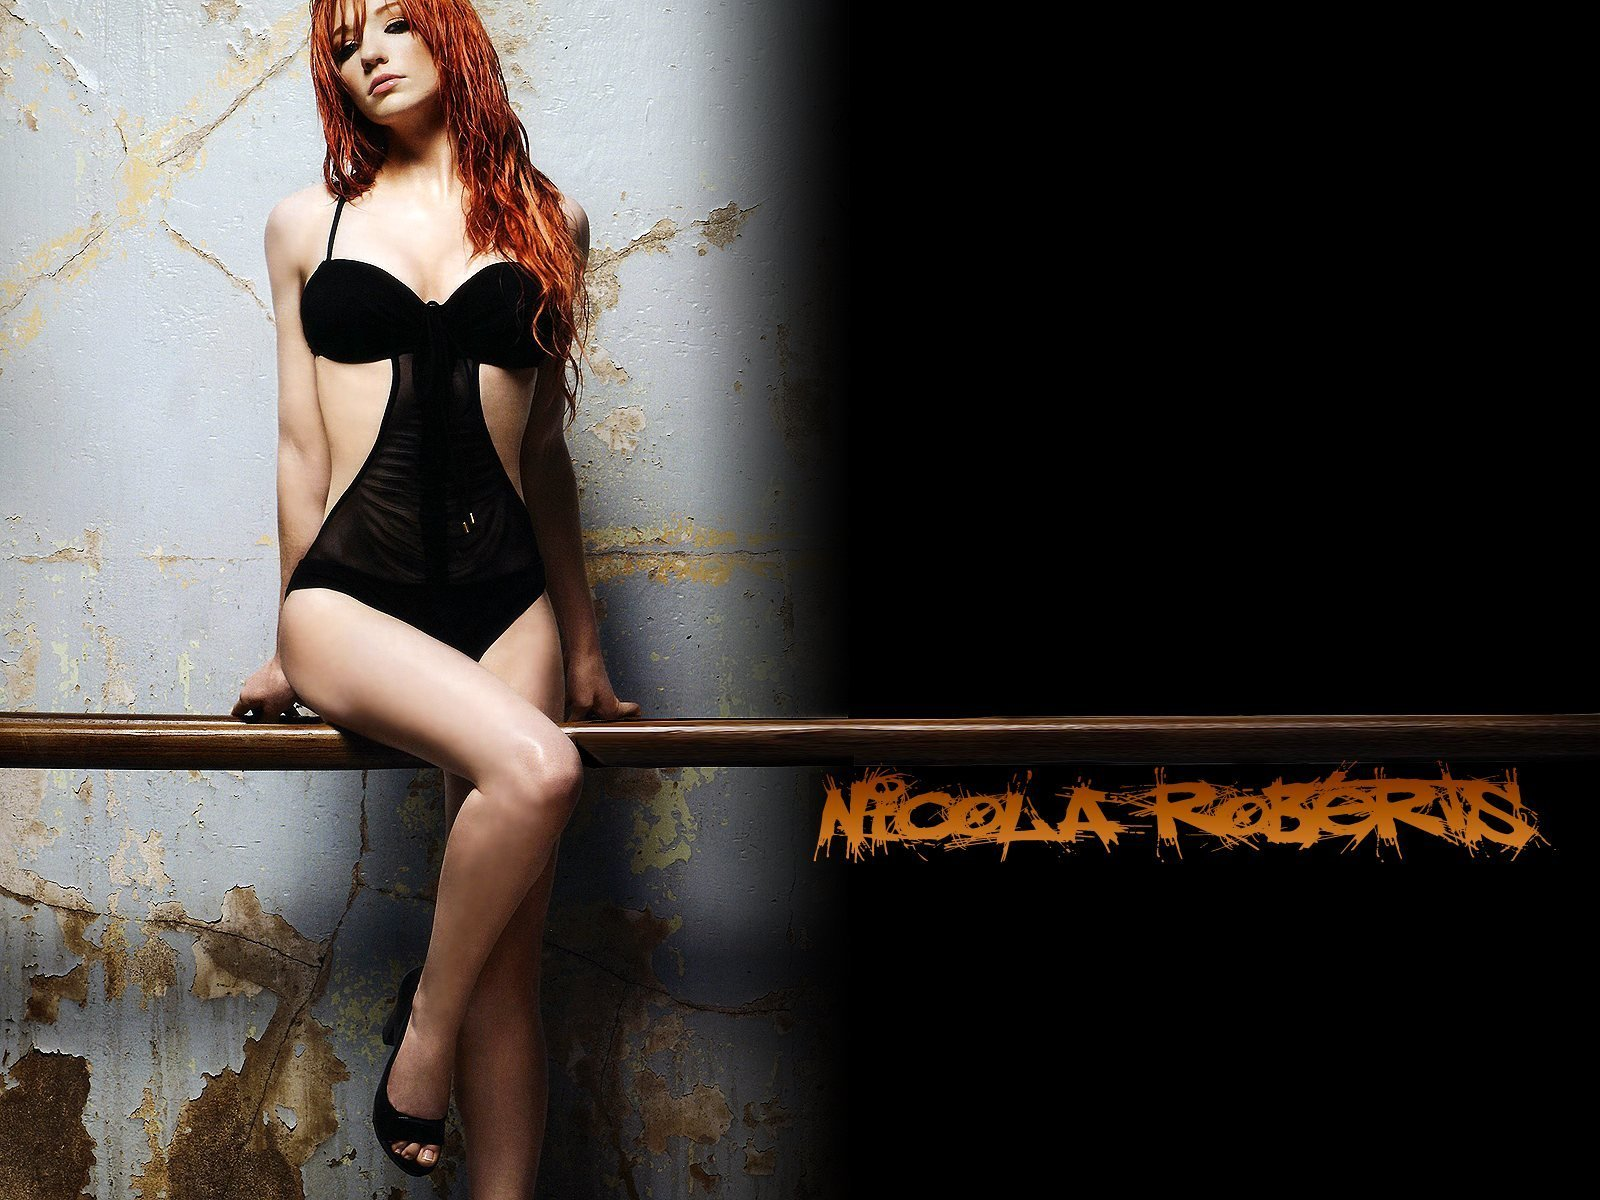 nicola roberts wallpaper